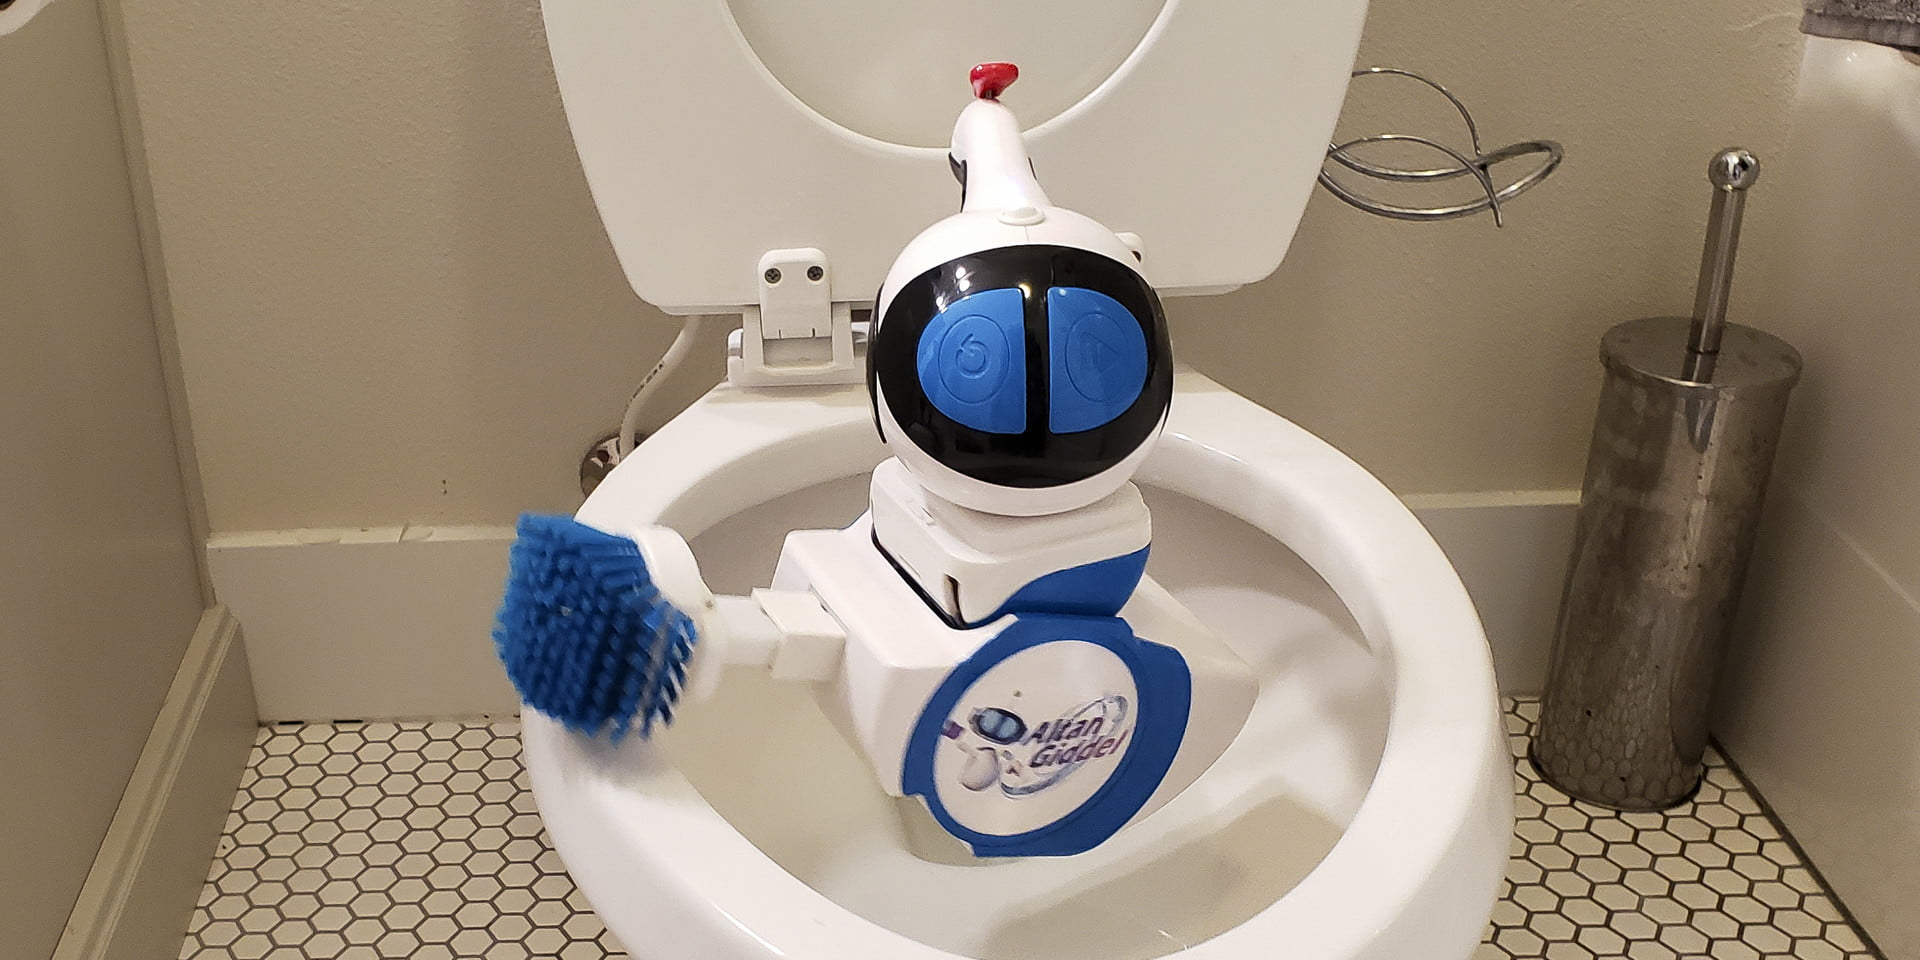 Do We Really Need A Toilet-Cleaning Robot? I Took It For A